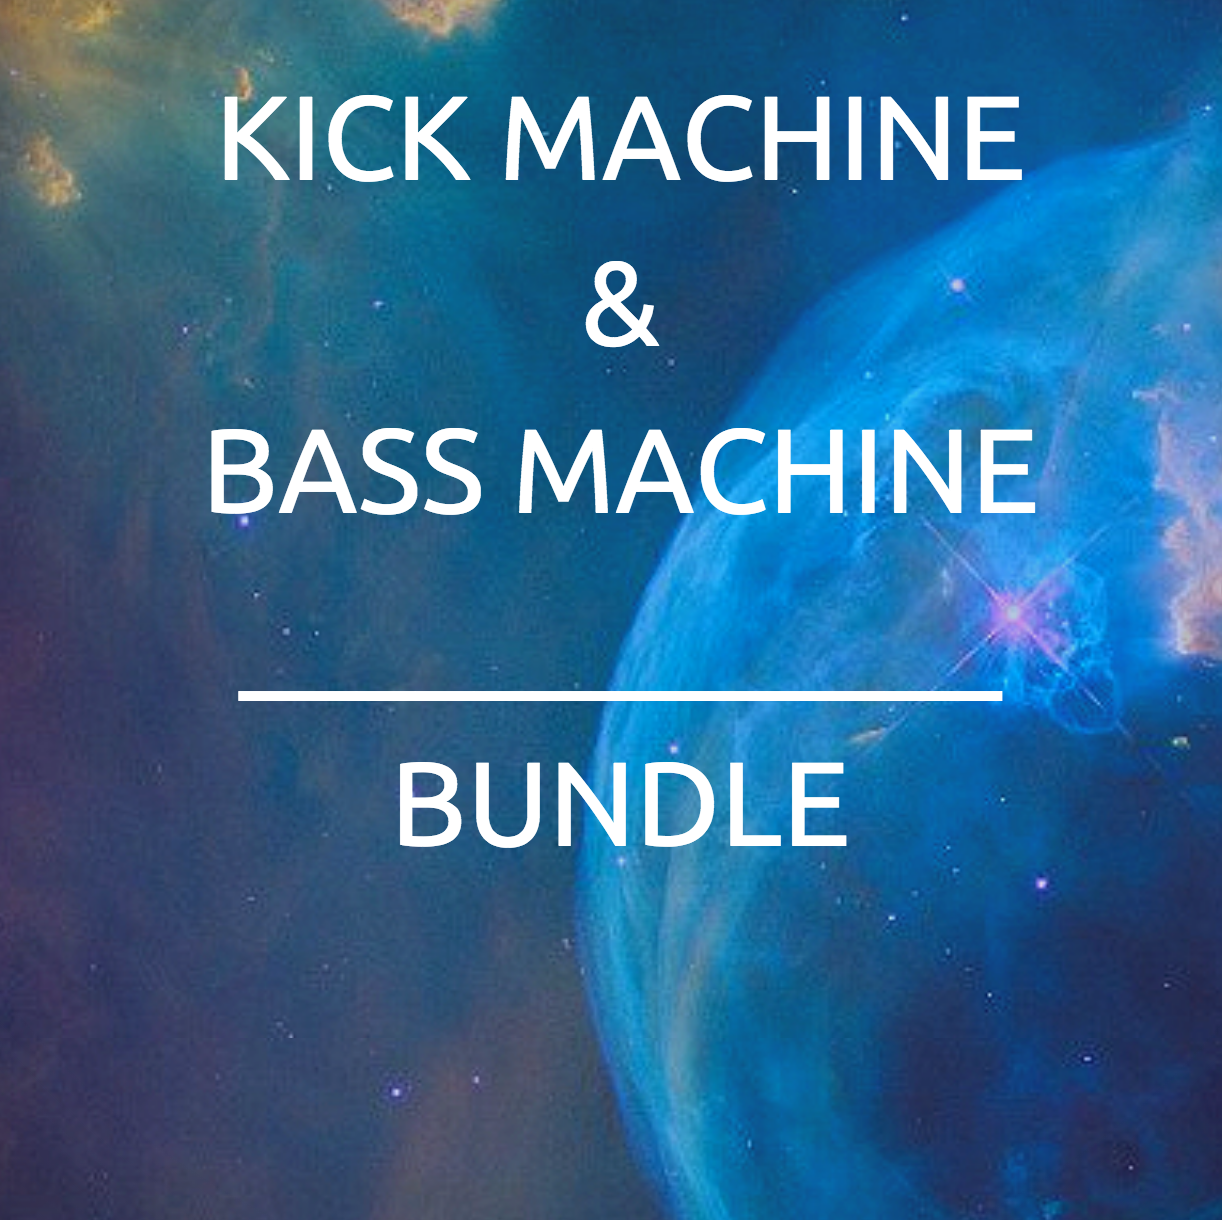 Kick Machine & Bass Machine Bundle